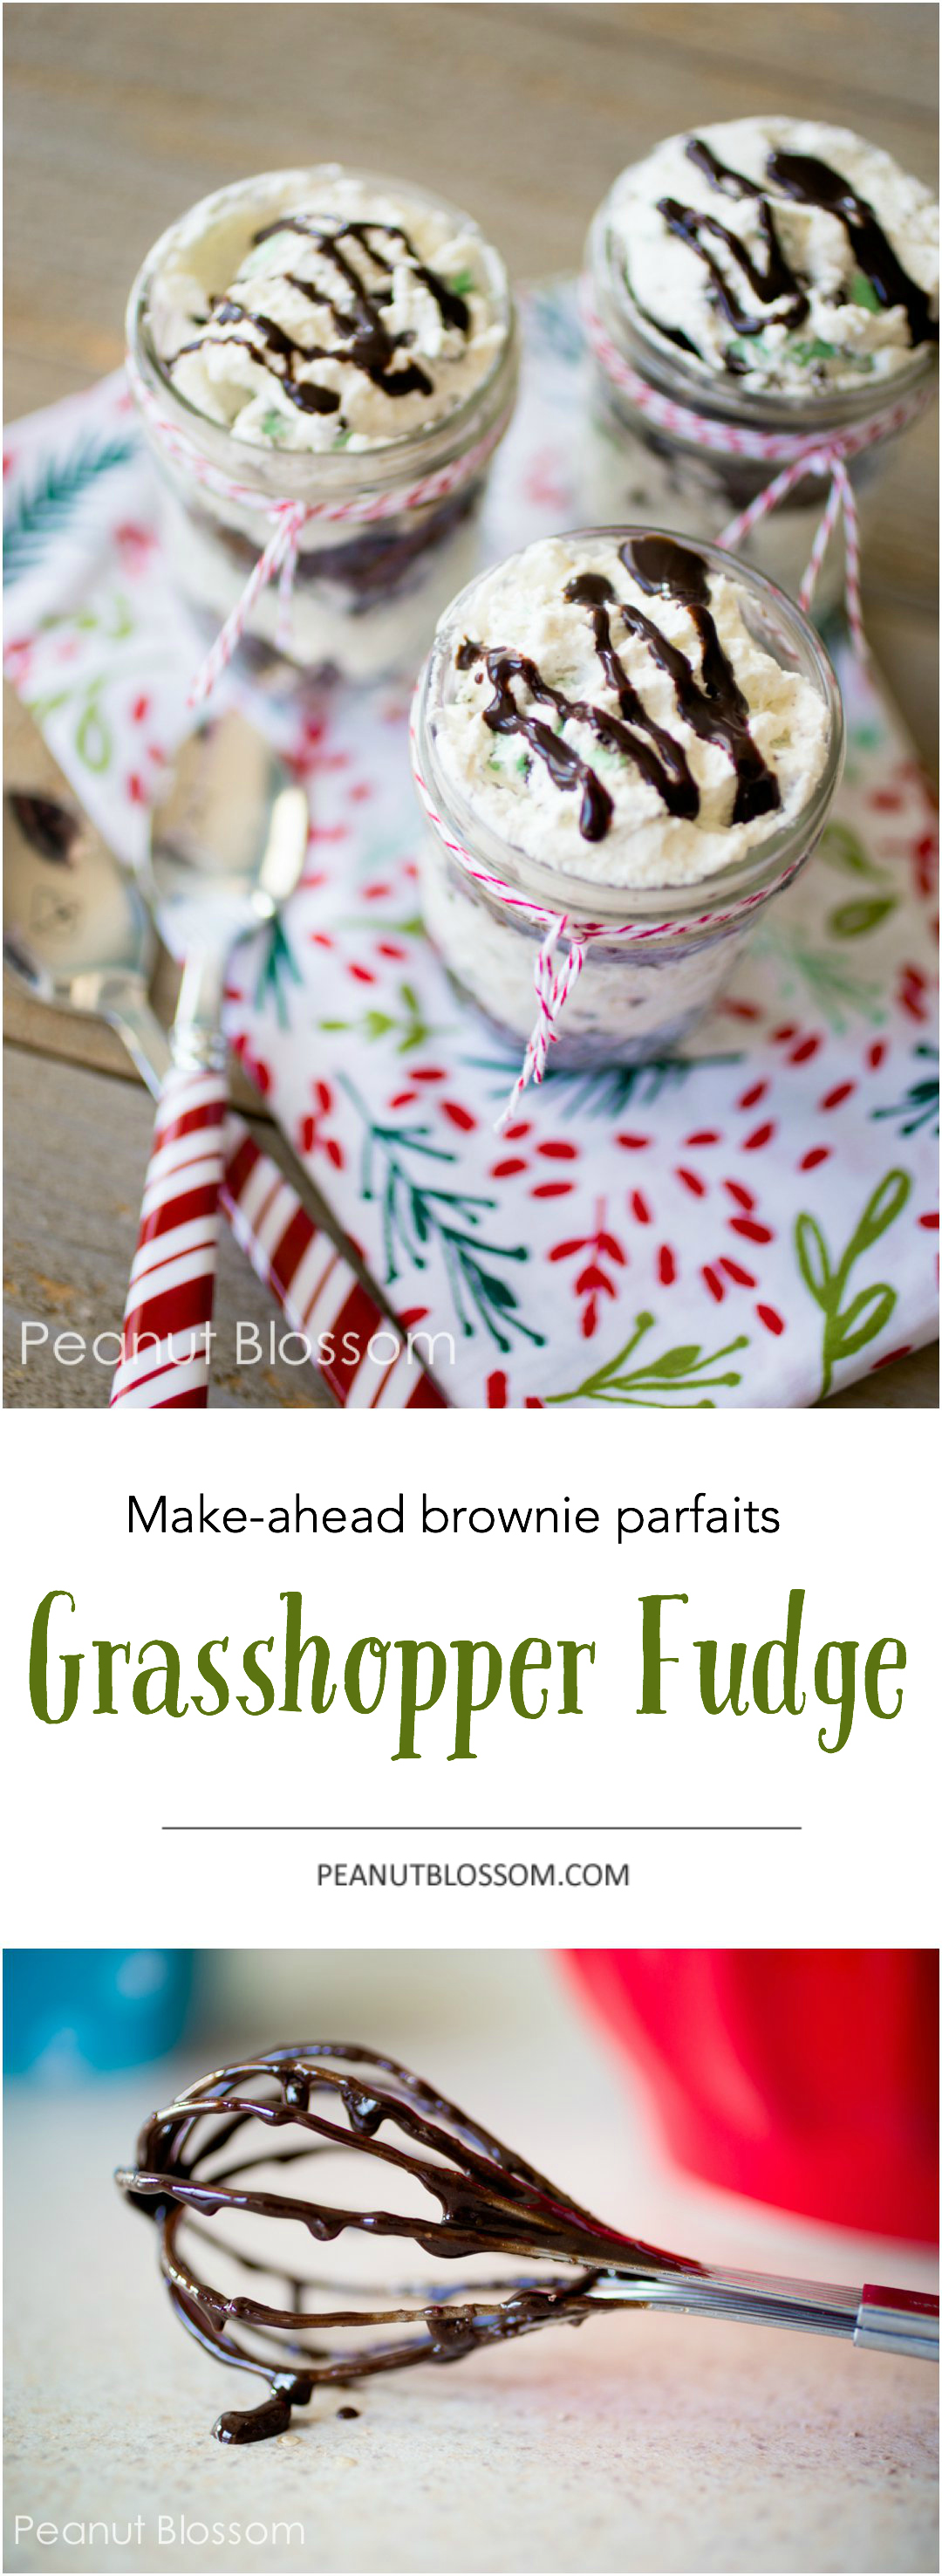 Make-ahead grasshopper fudge parfaits